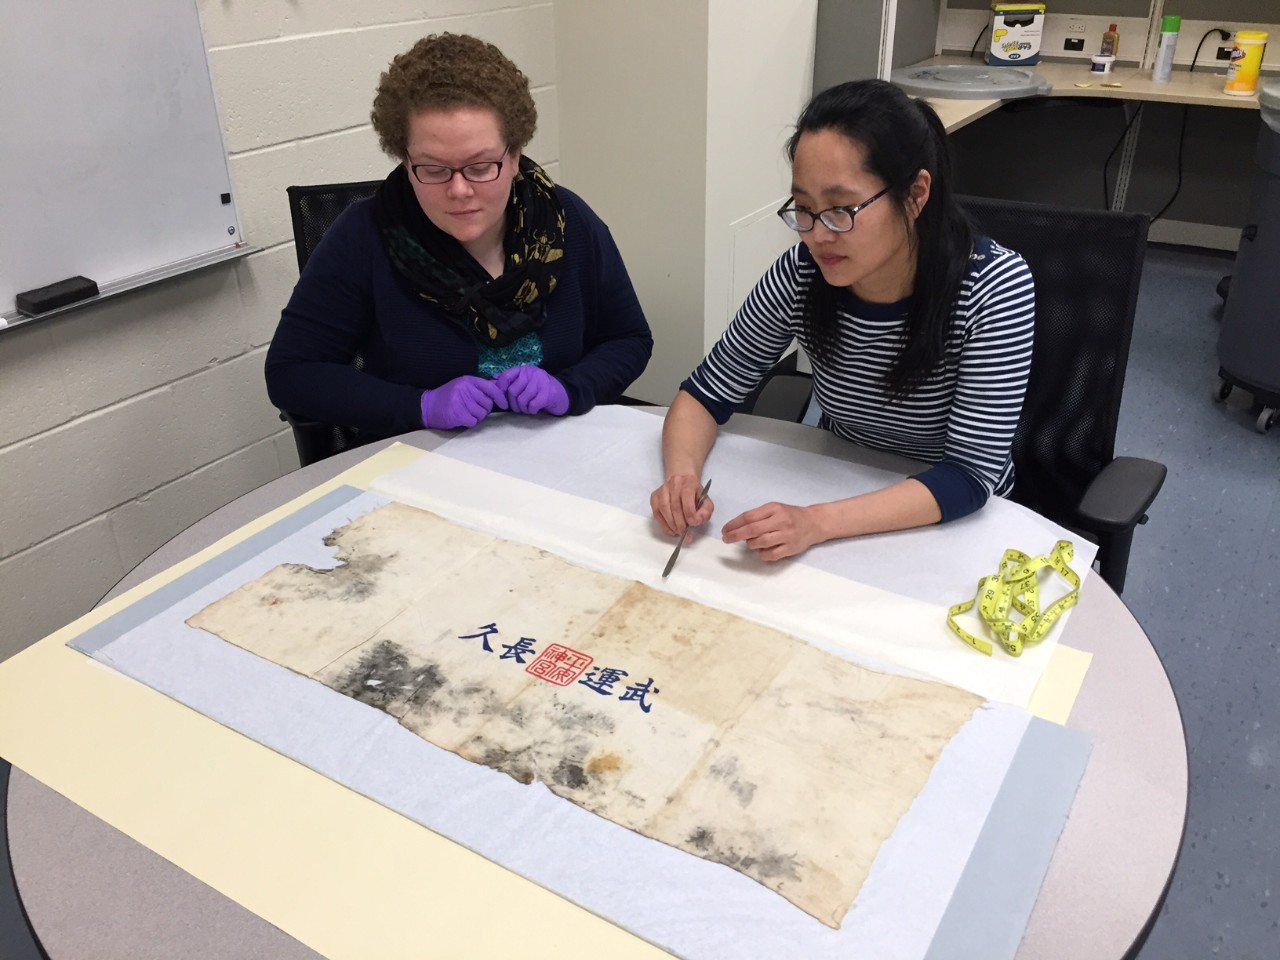 Two conservators examine a Japanese prayer towel.